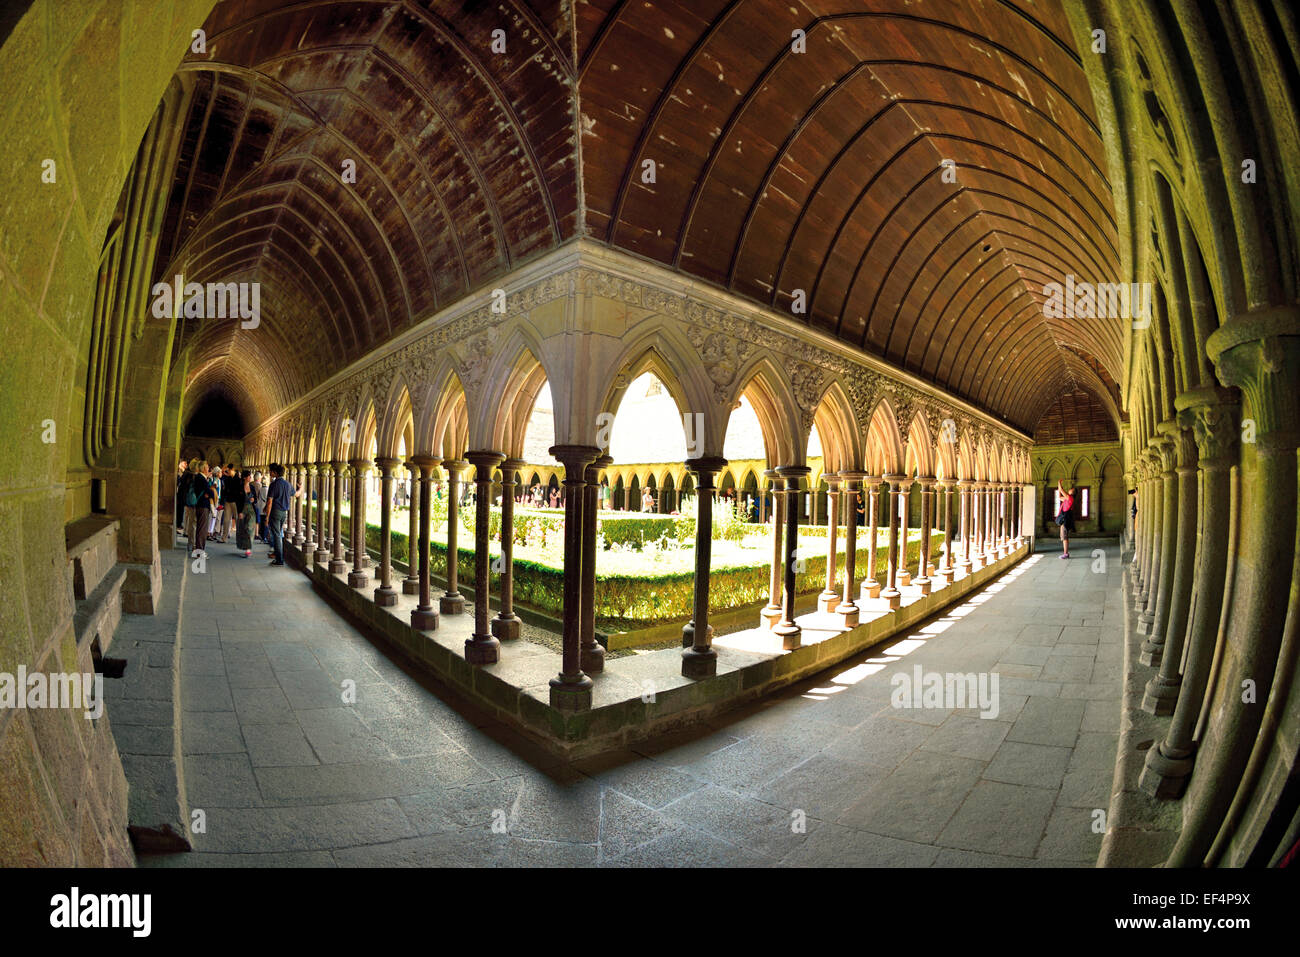 France, Normandy: Medieval cloister of the Abbey Le Mont St. Michel - Stock Image